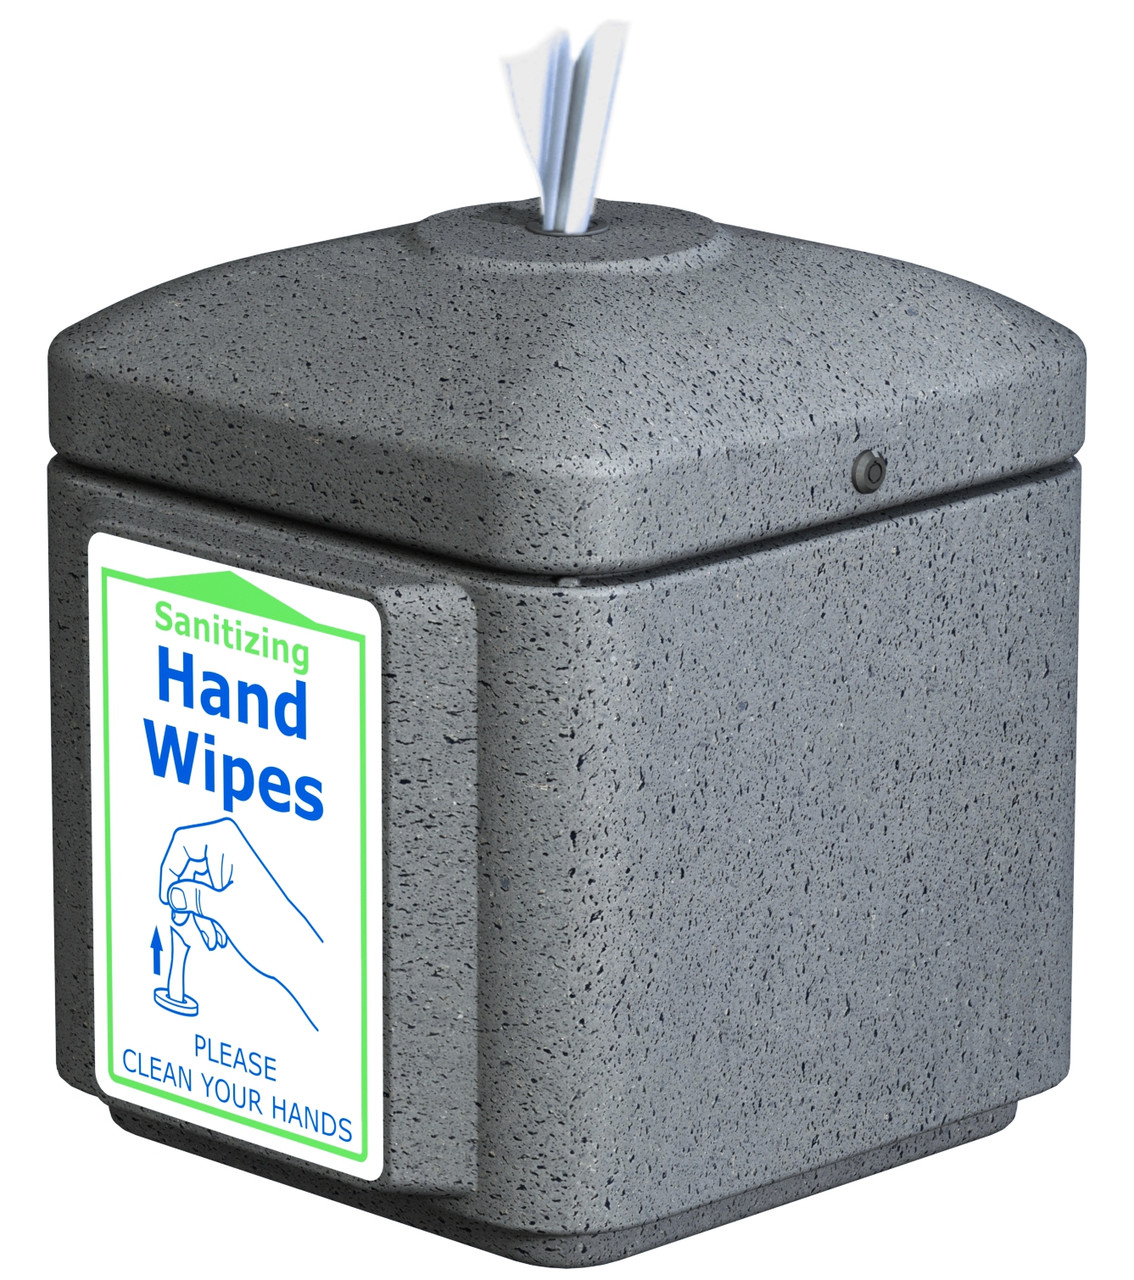 Sanitizing Wipe Dispenser Table Top 8002363 (GRAY, With 900 Wipes)